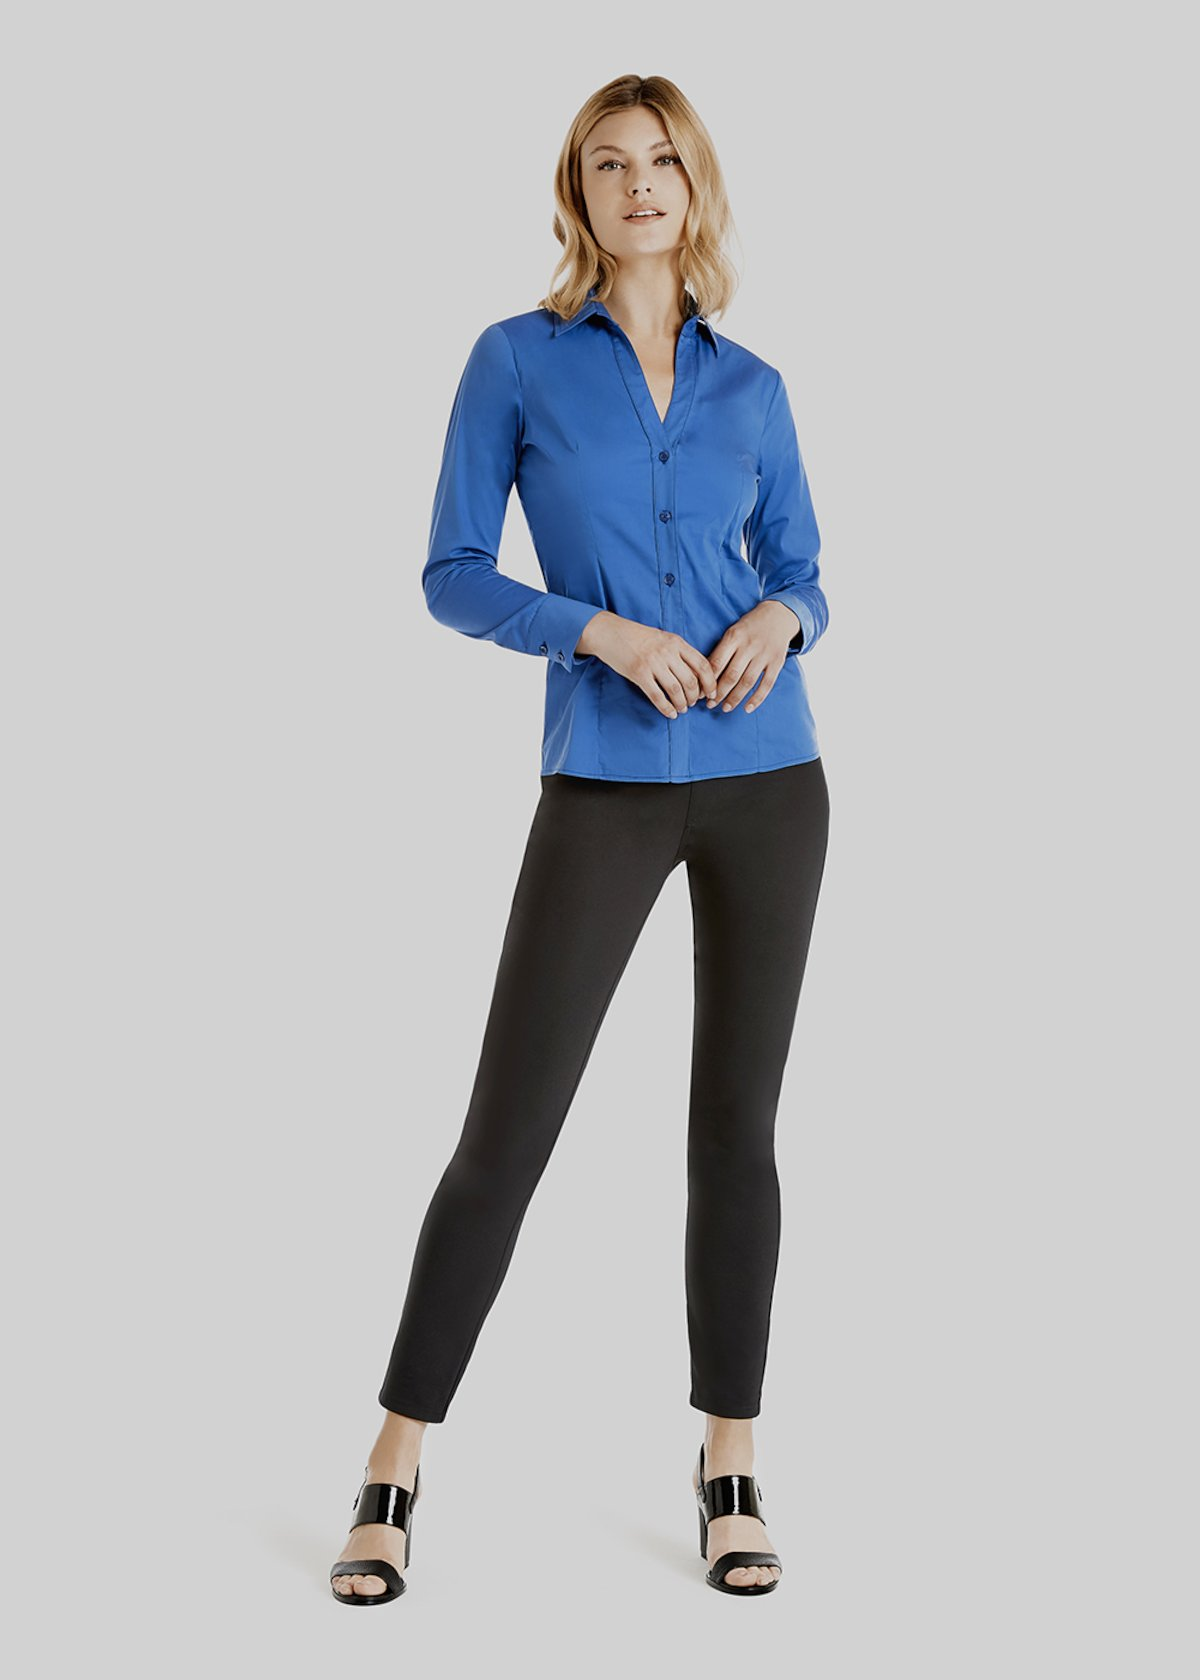 Kelly Poplin shirt with jersey sleeves and back - Lapis